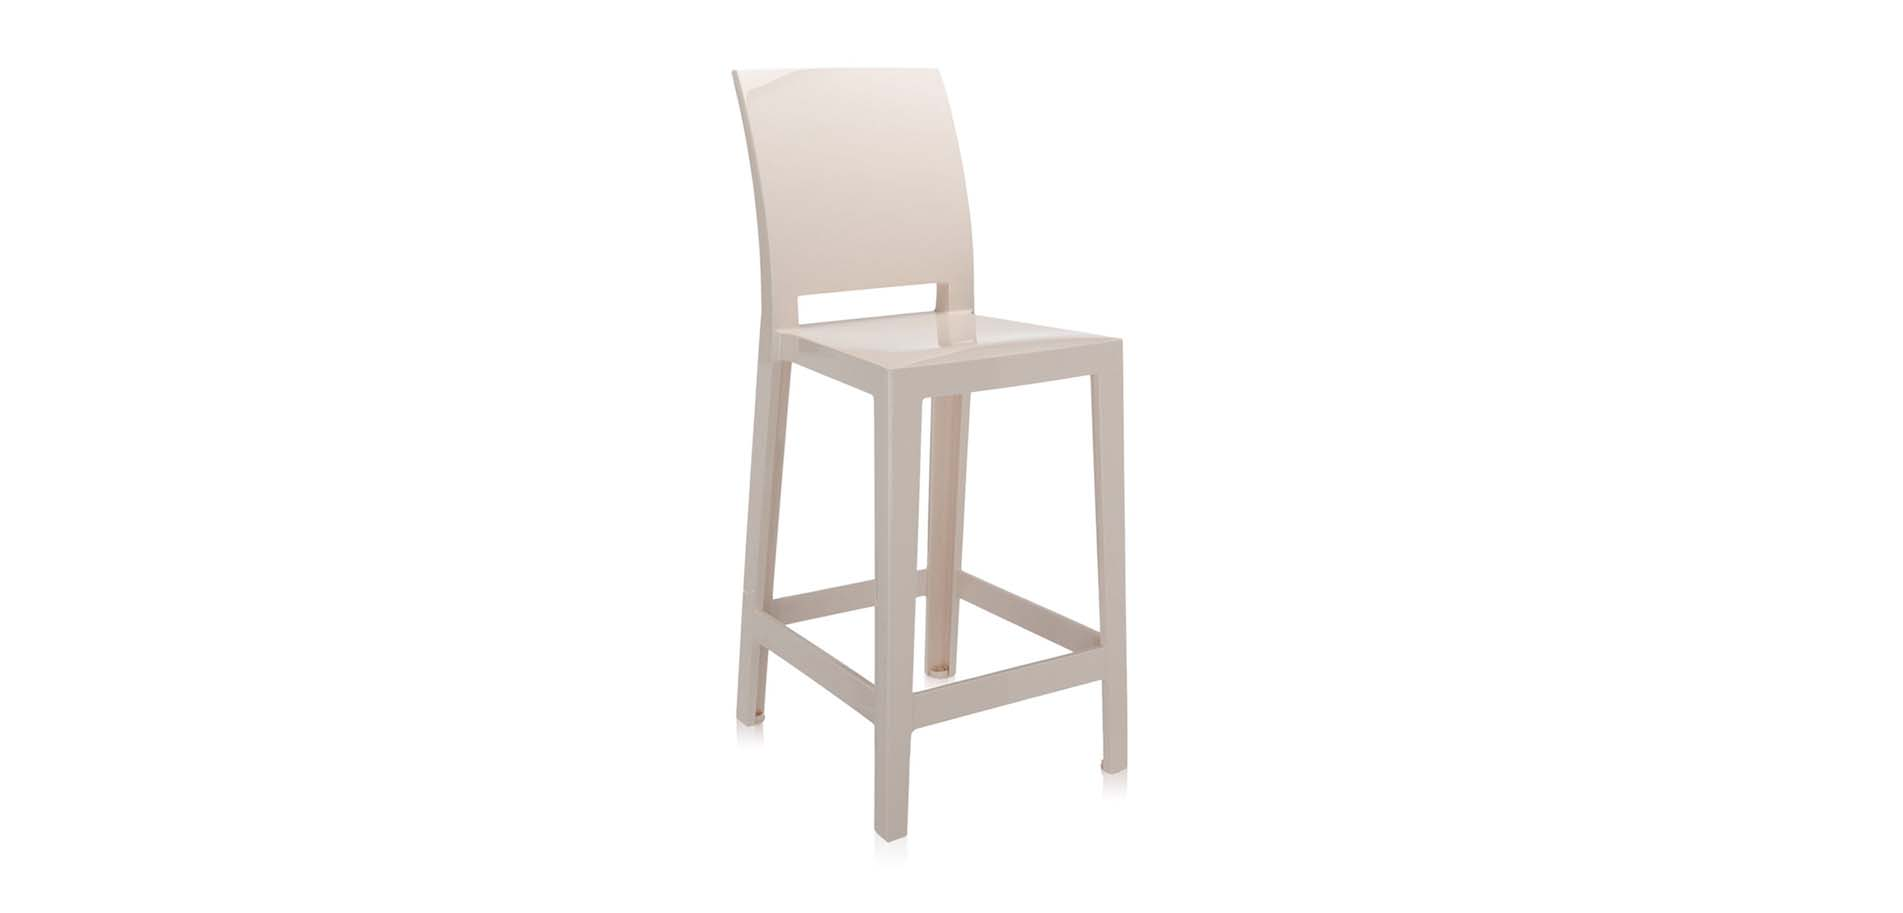 One More Please Bar Stool 100 Kartell Έ